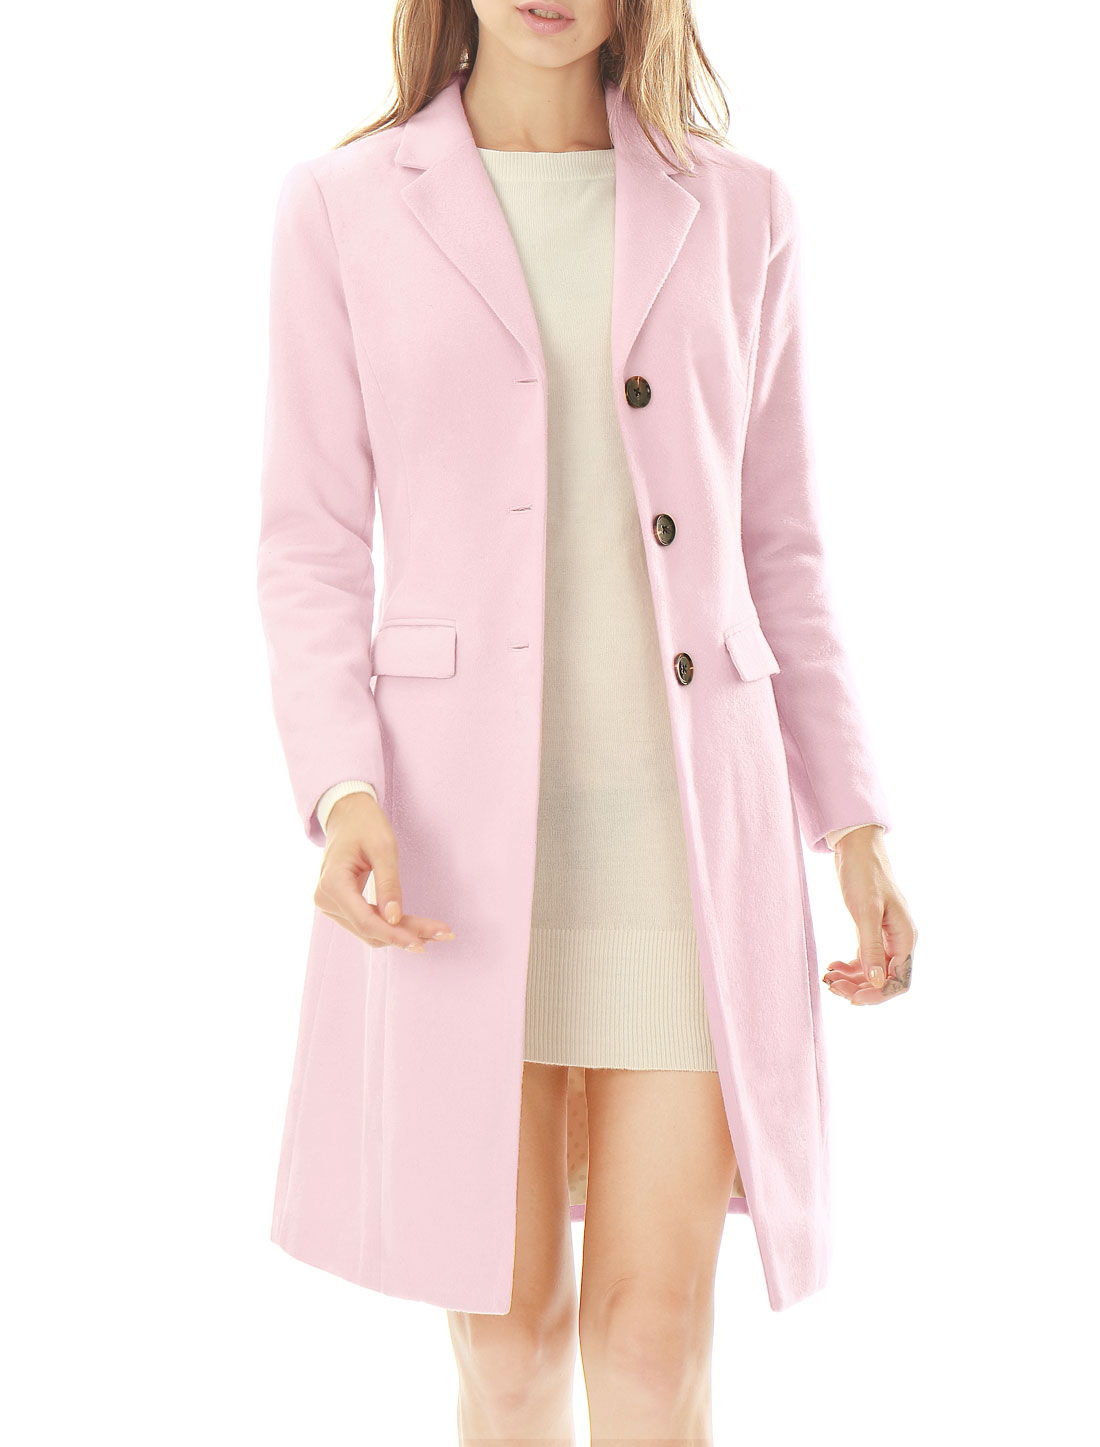 Women Notched Lapel Button Closure Worsted Long Coat Light Pink XS